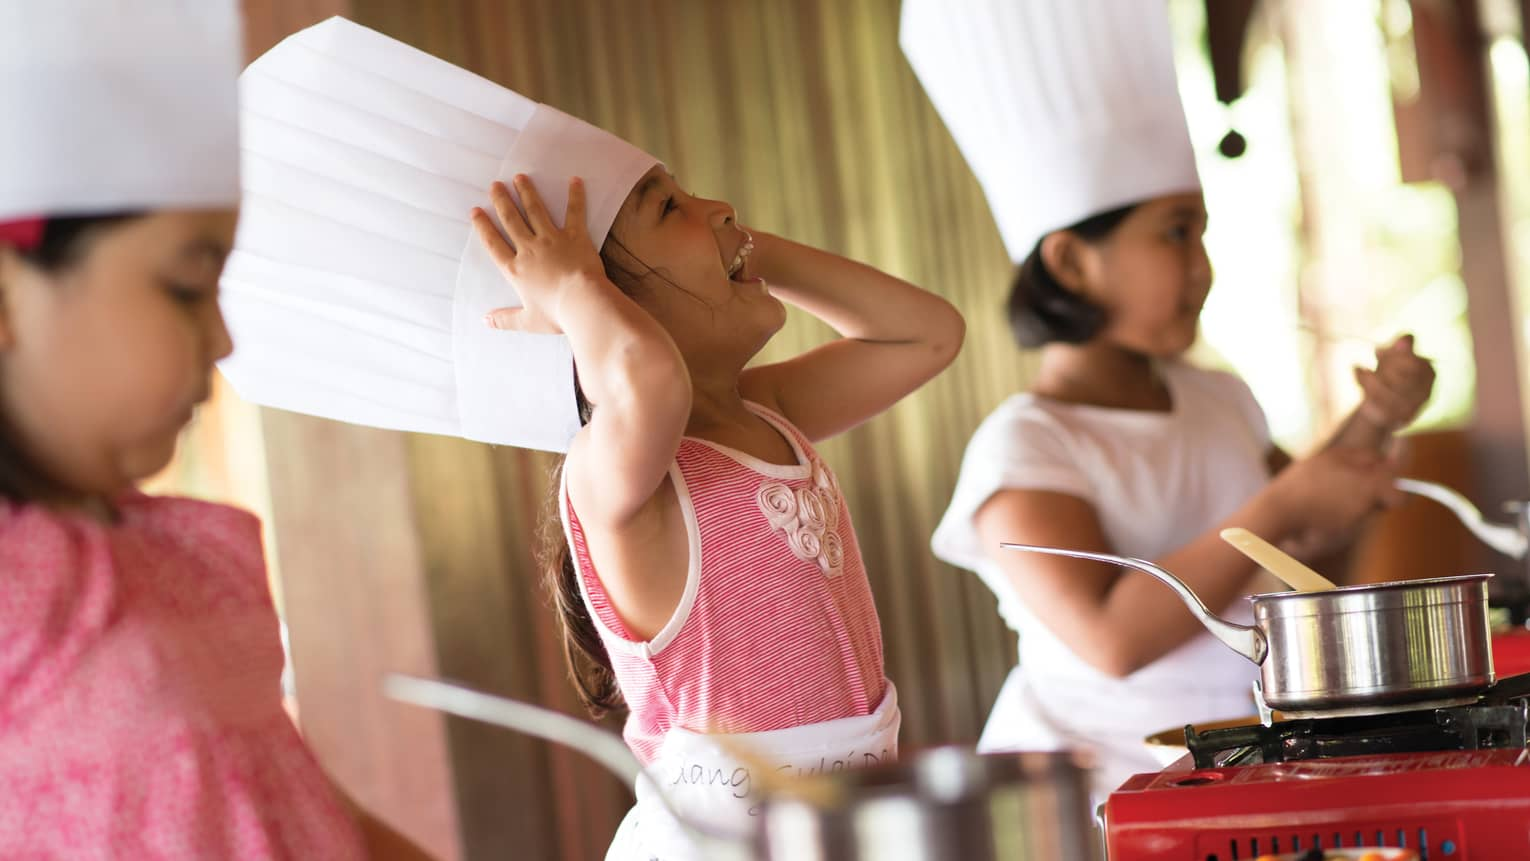 Three young children wearing tall white chef's hats in cooking class